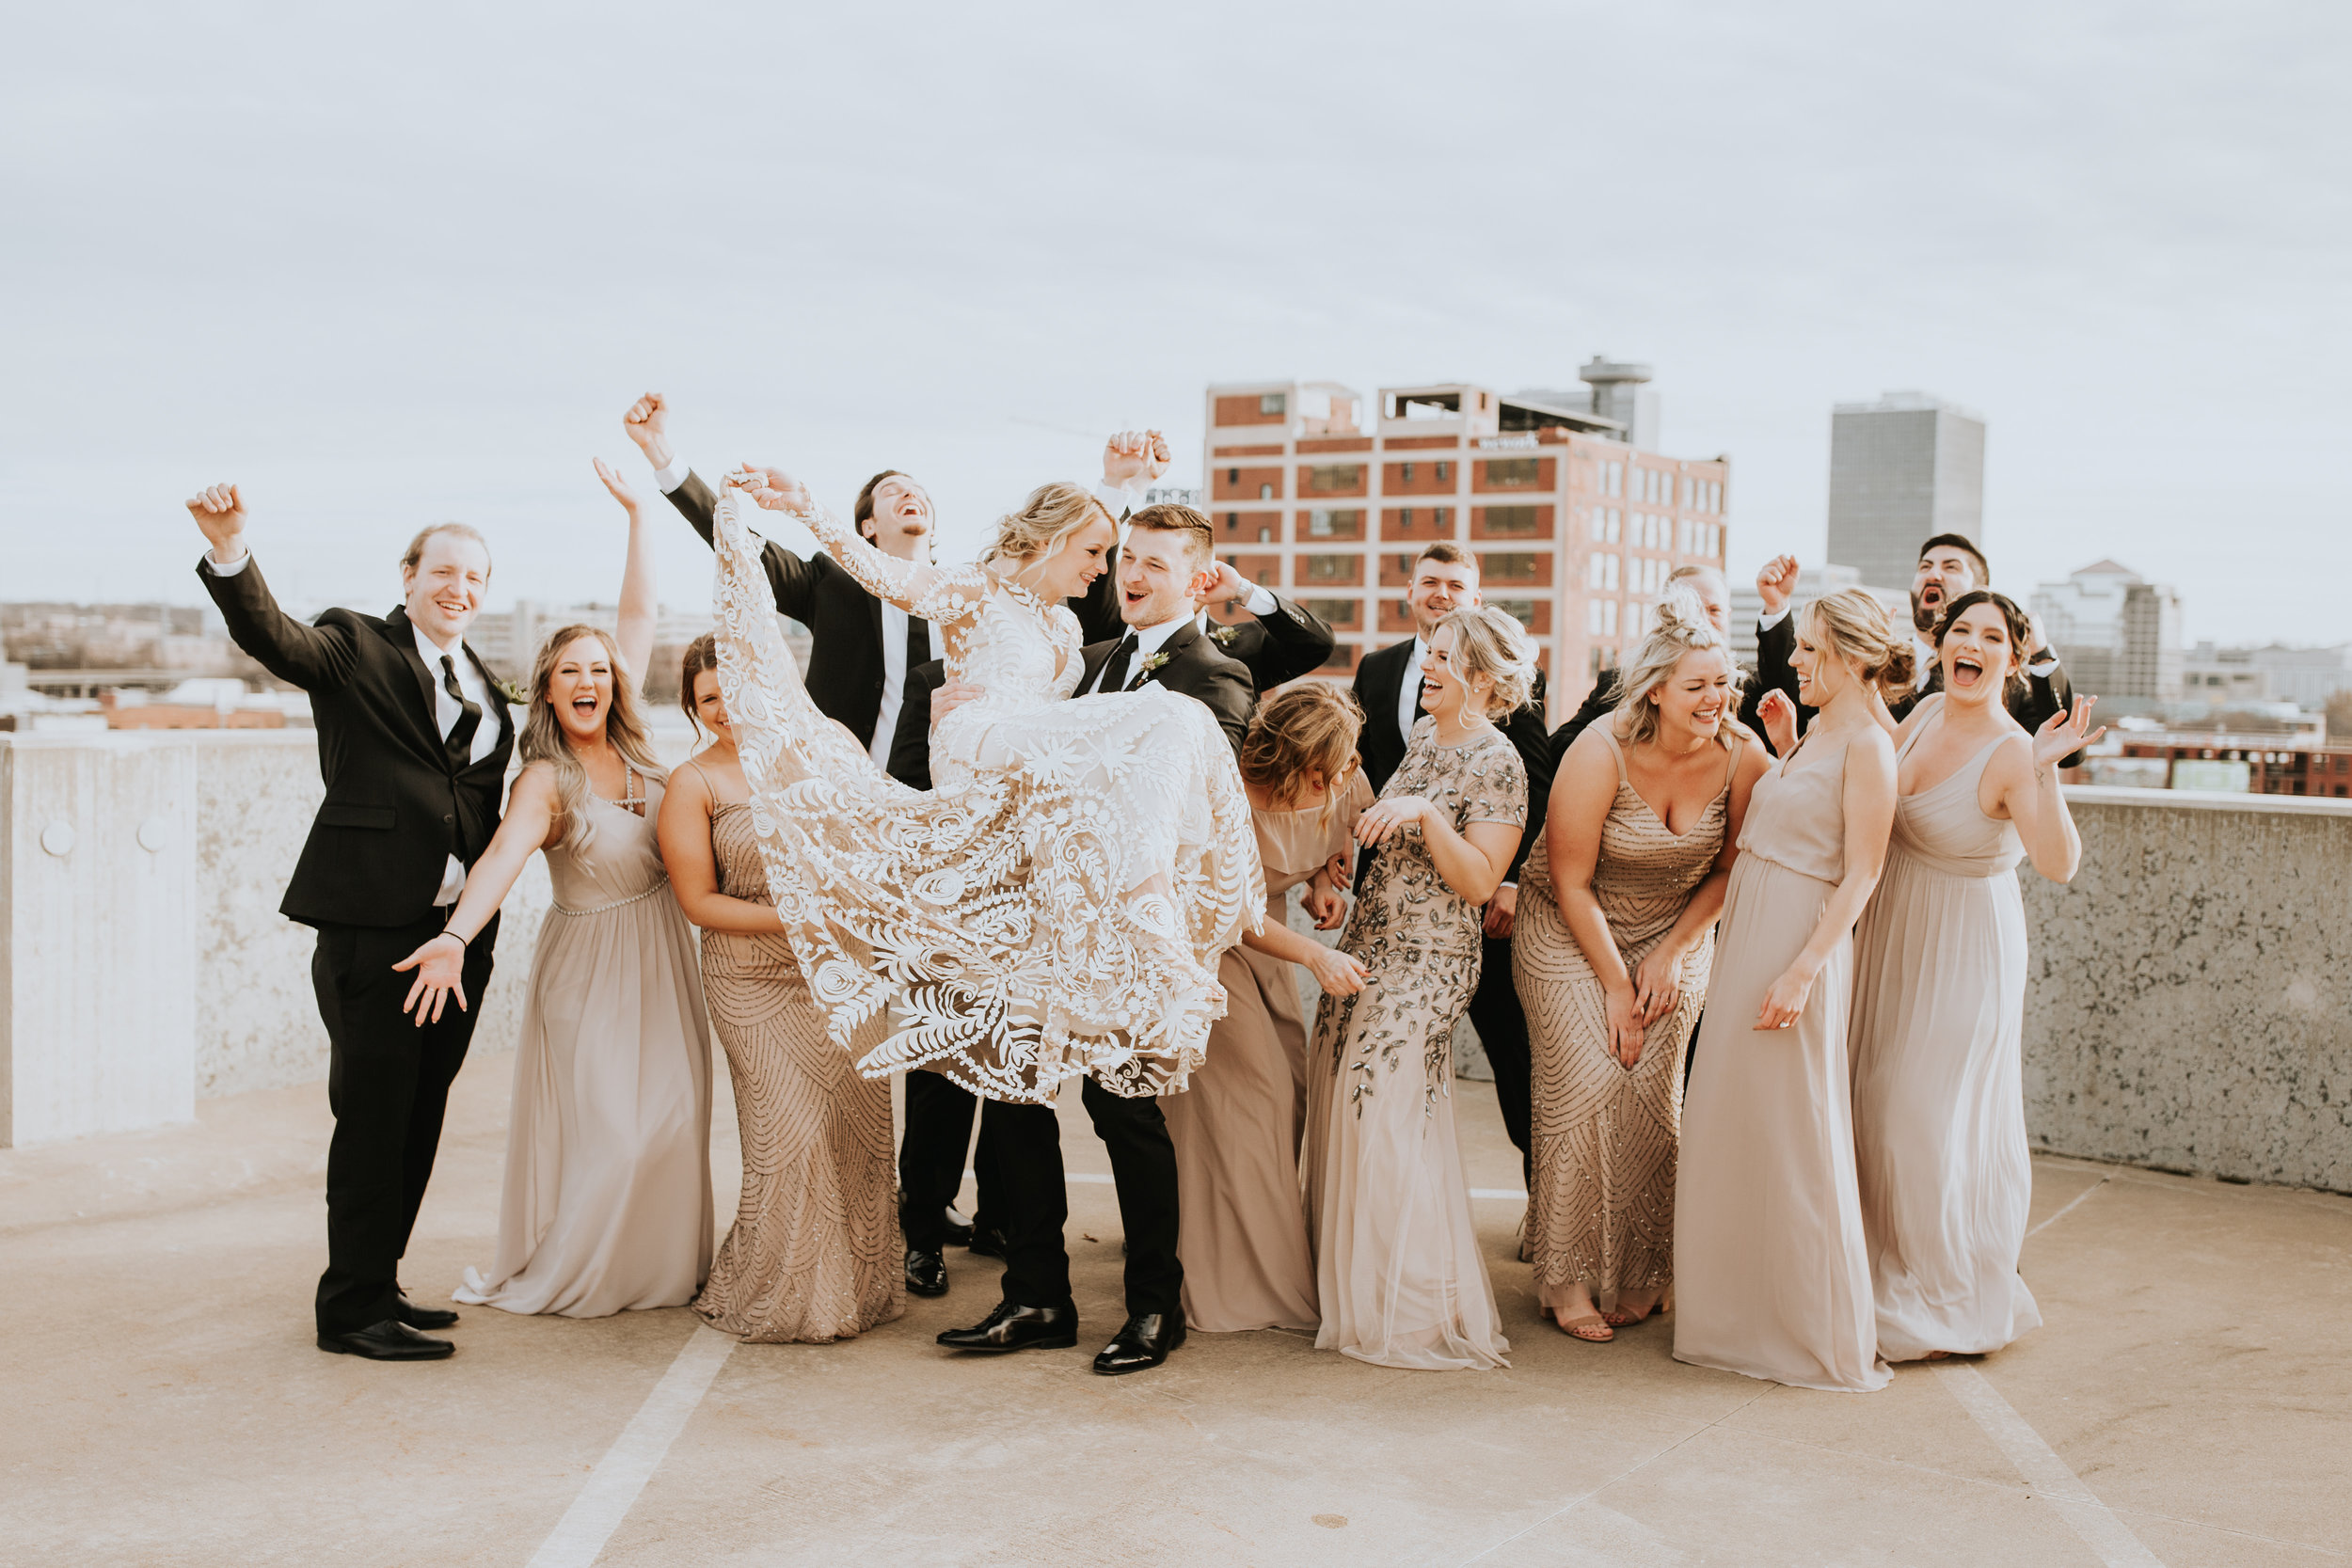 Callie and Adam Wedding Party Roof-48.jpg